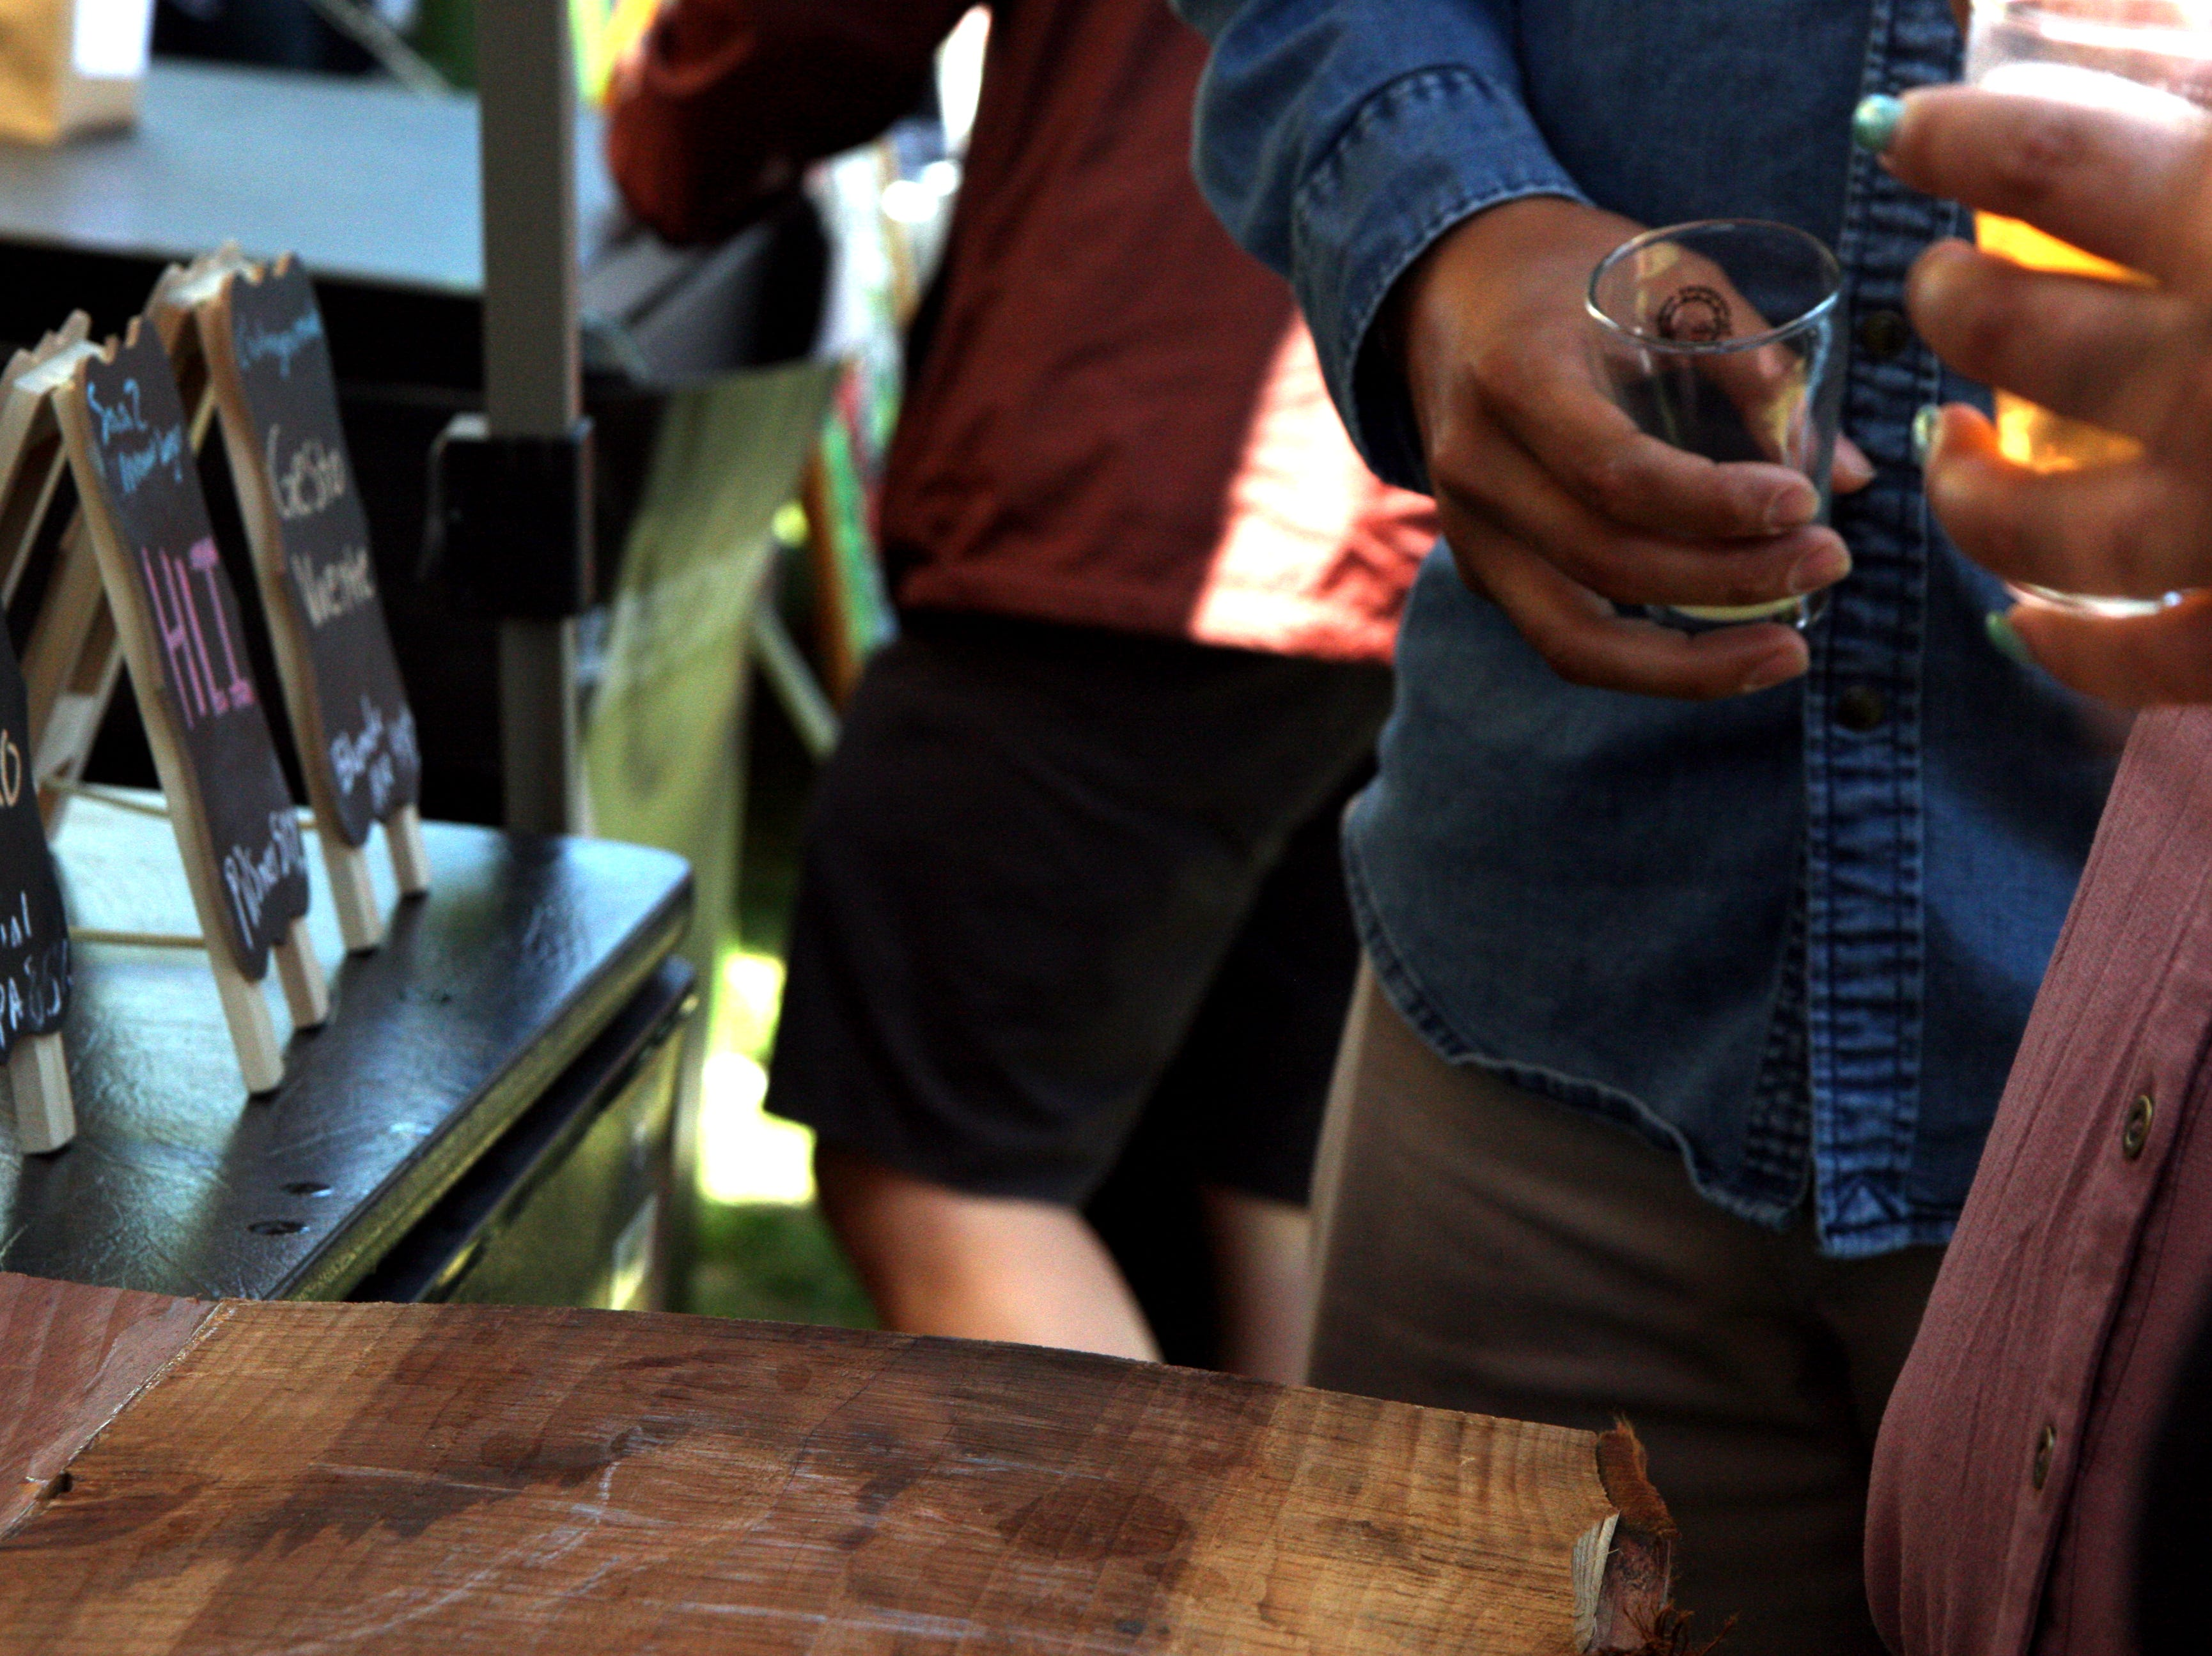 Hundreds of people attended Steinbeck's Home Brew Fest Saturday, paying $40 to $50 apiece to get into the event held at the Rodeo grounds. May 4, 2019.